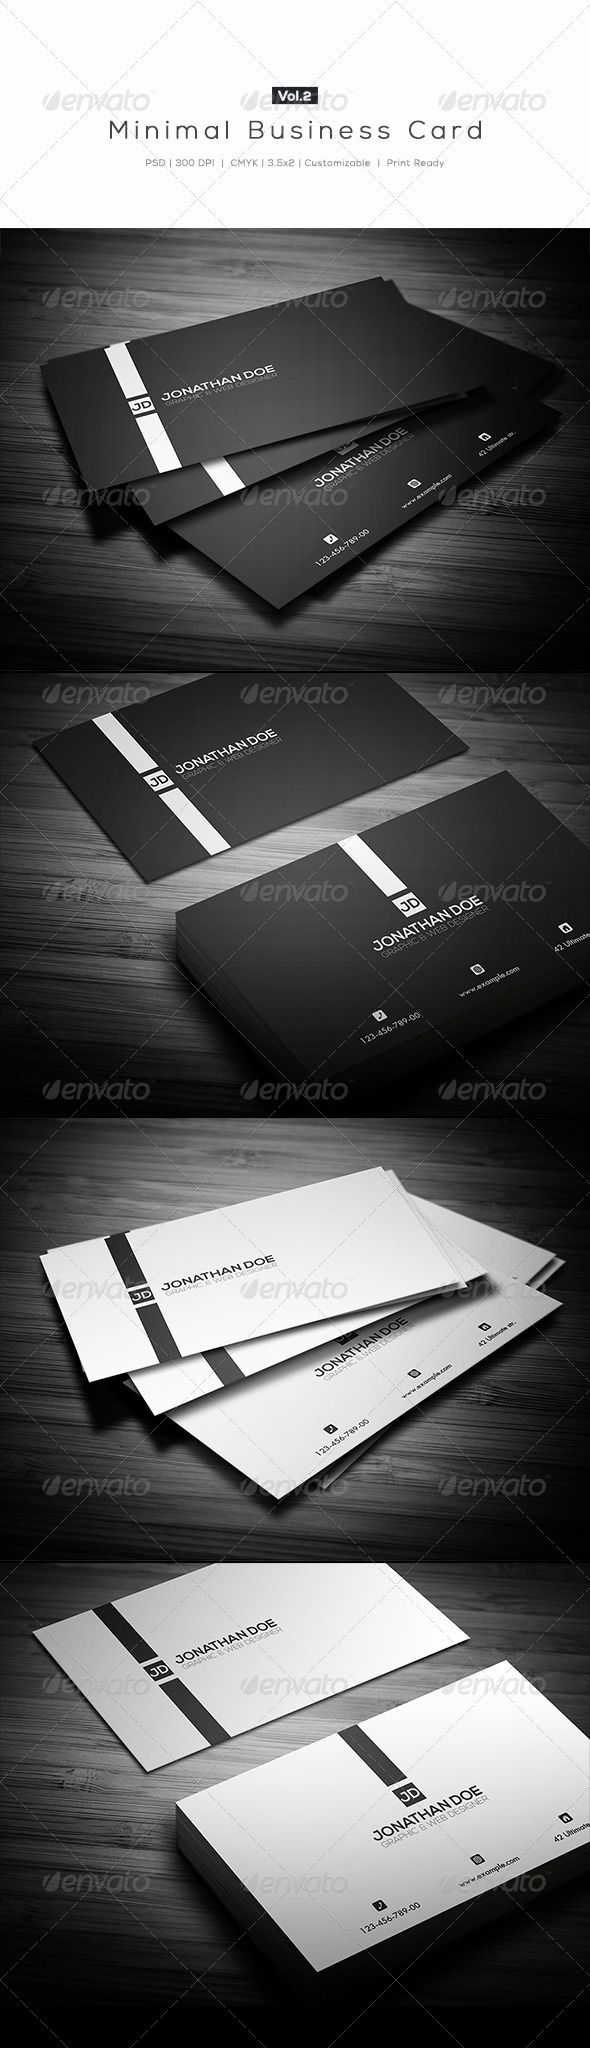 77 best business cards images on pinterest business card design minimal business card vol2 reheart Images